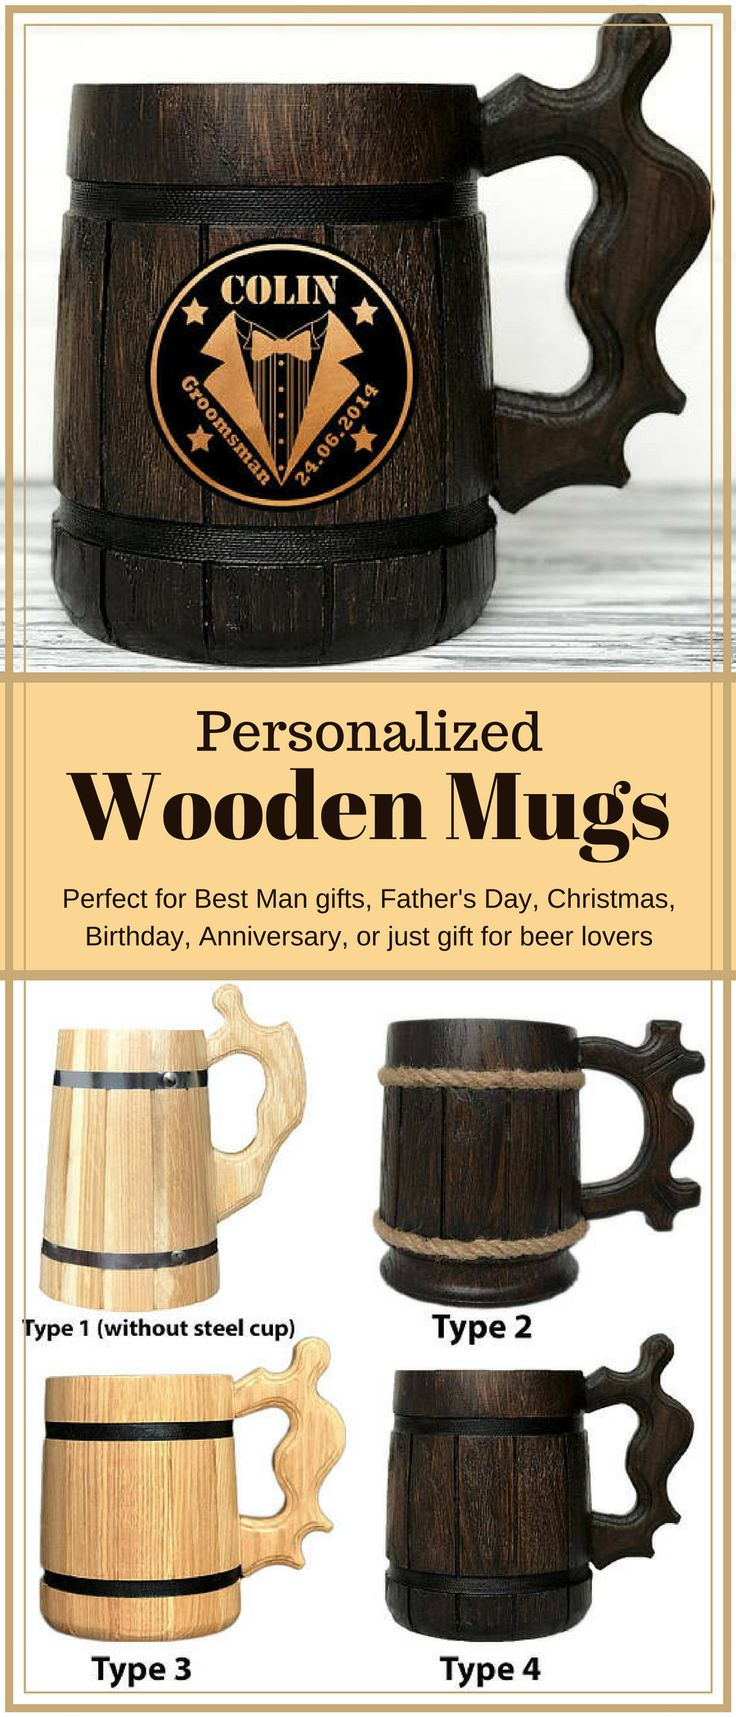 Personalized Wooden Mug can be an ideal gift, whatever the occasion! It is perfect for Father's Day, Christmas, Birthday, Anniversary, or just gift for beer lovers. It is stunning idea as a personalized gift for him! This Beer Tankard is great gift for the groom to the wedding, the groom's best man and stag party and etc. Groomsmen Mugs Engraved. Personalized Mug. Best Man Gifts. Groomsmen Gift. NNT #ad #etsy #mugs #giftidea #beer #groomsmen